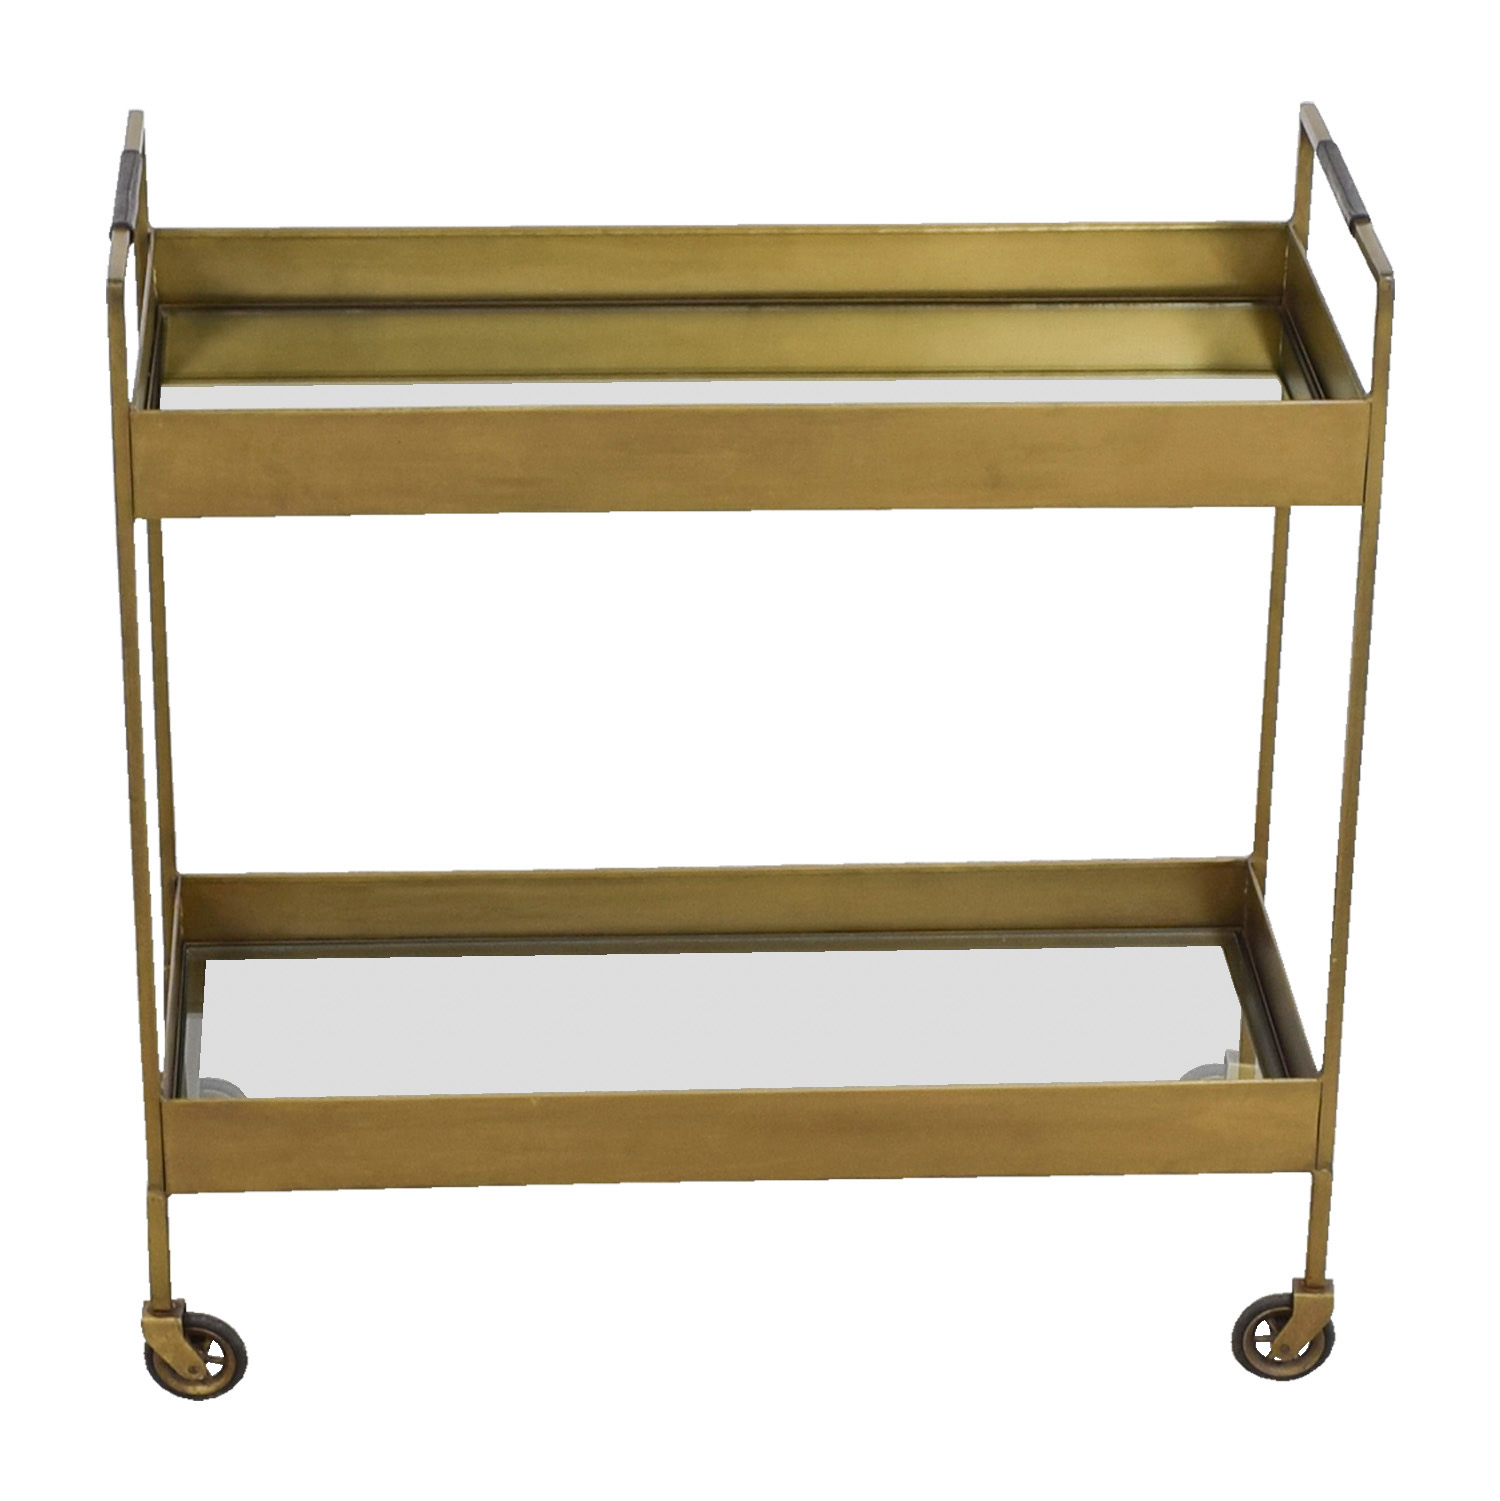 buy Crate & Barrel Libations Antique Brass Bar Cart Crate & Barrel